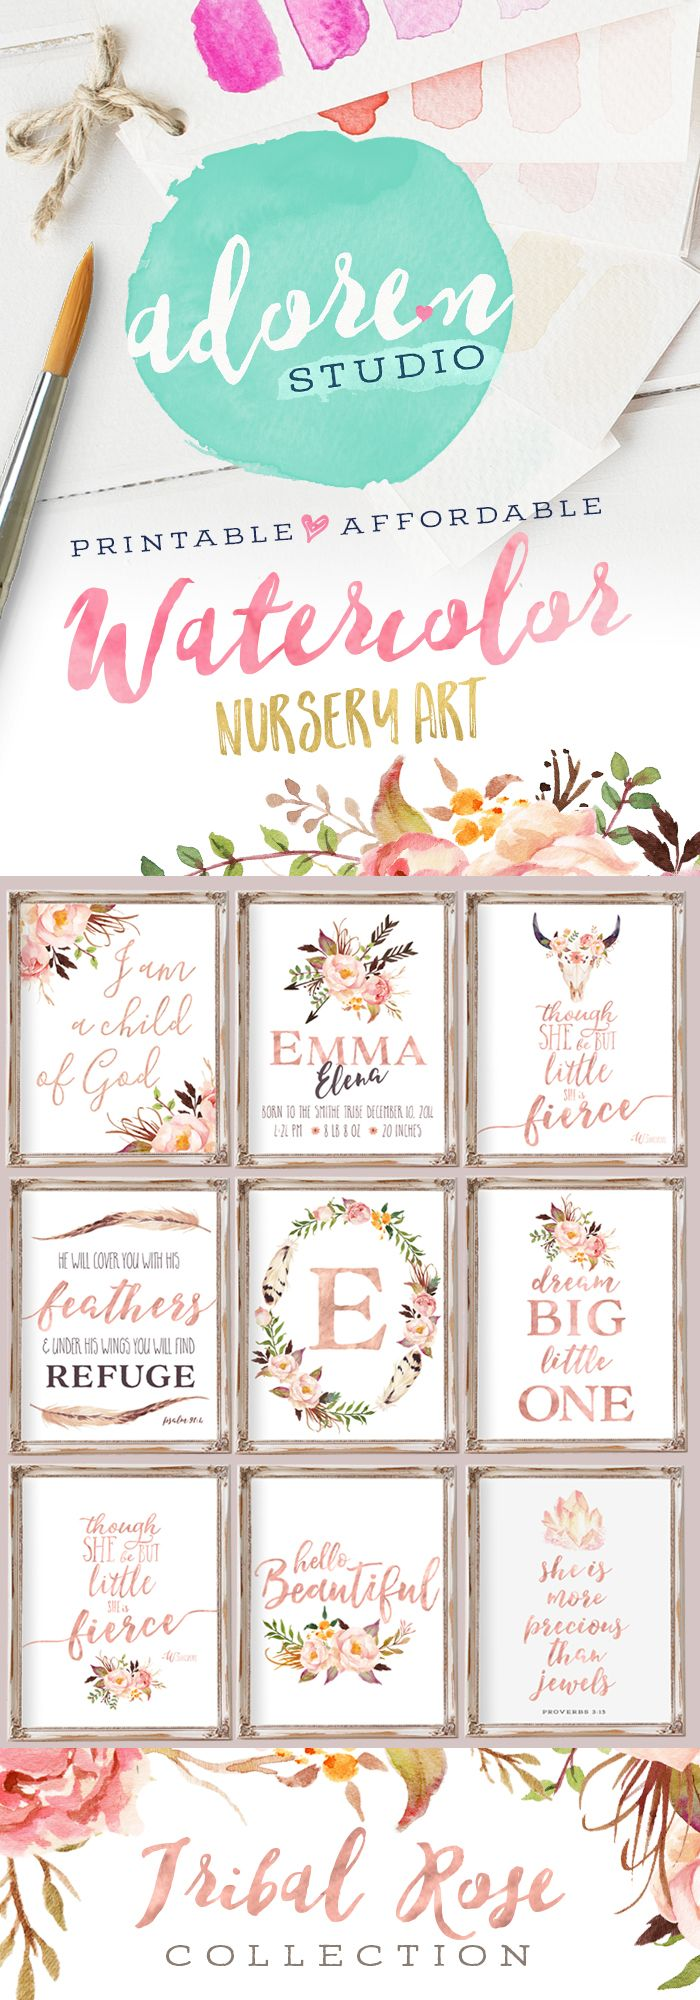 Best 25+ Girl nursery decor ideas on Pinterest | Baby girl nursery ...